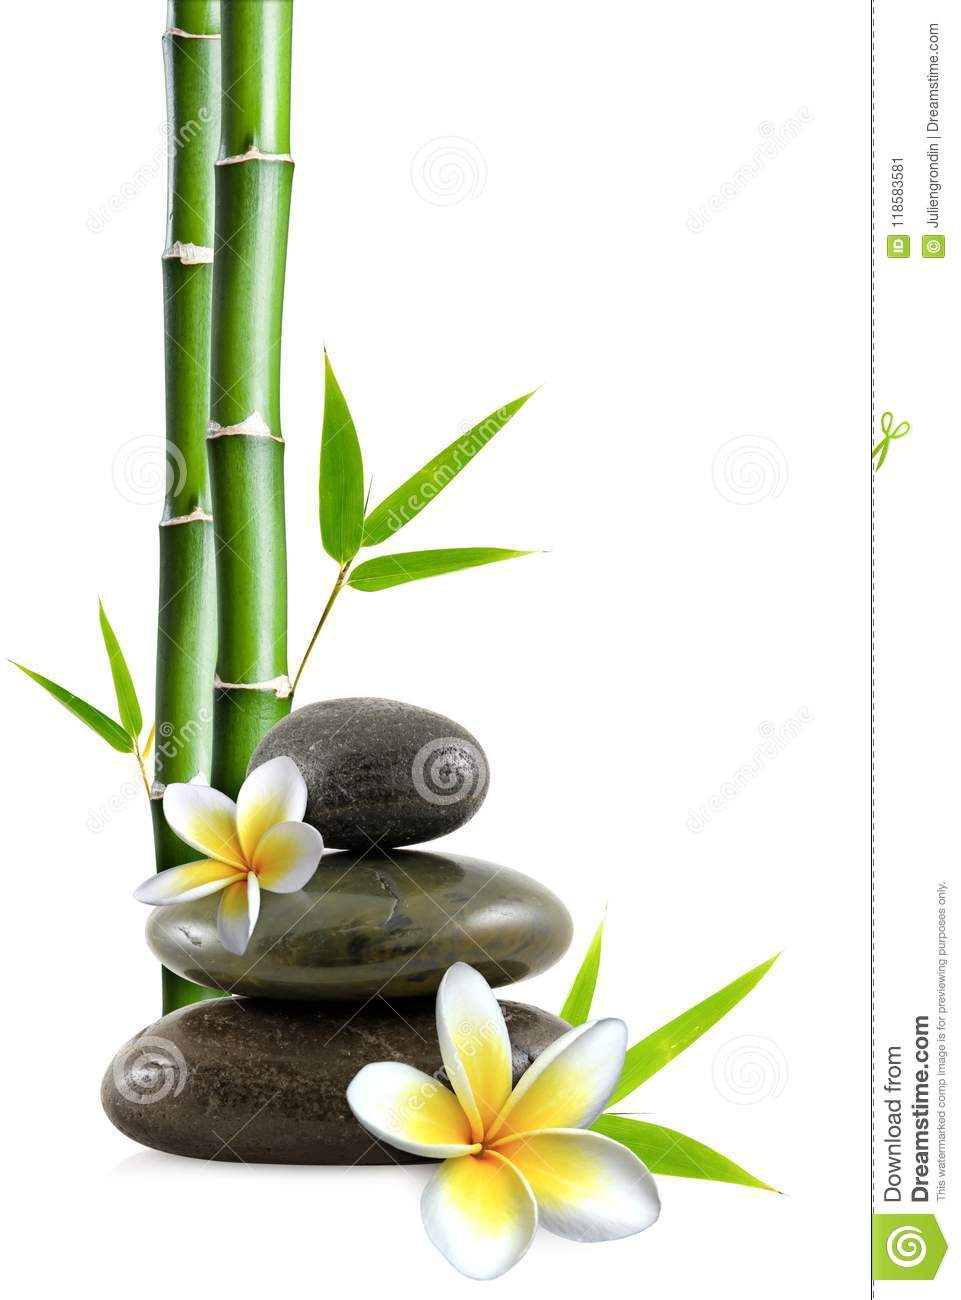 Stacked pebbles, frangipani flowers and bamboo stem and leaves